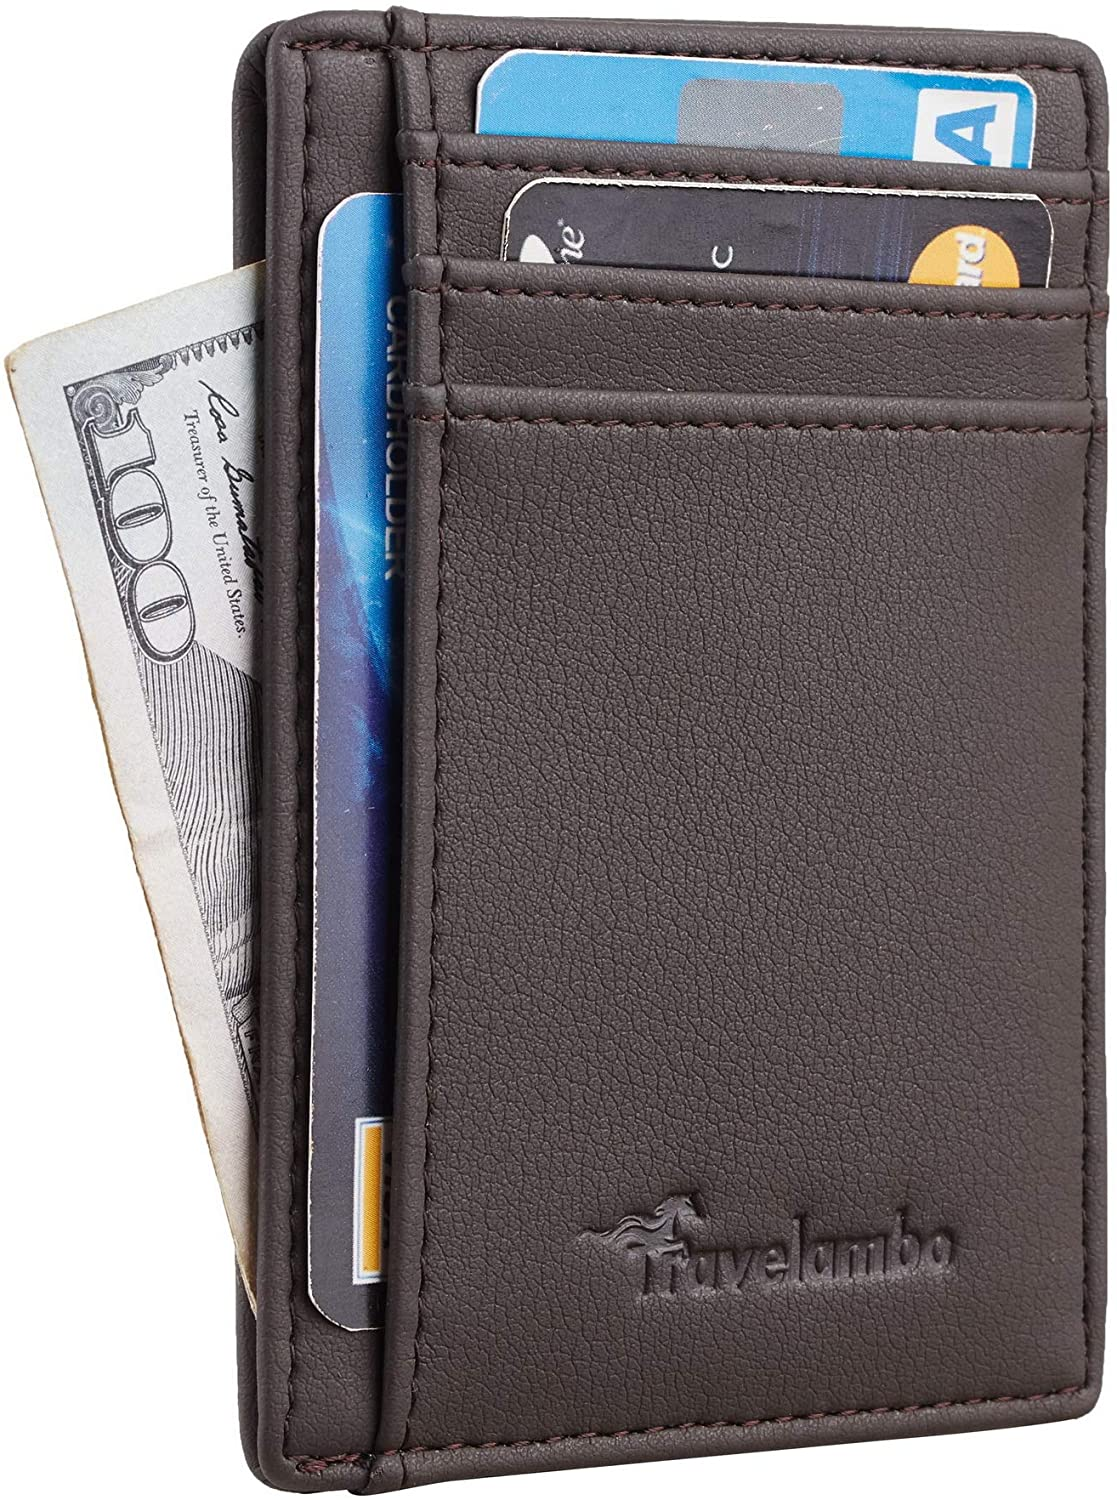 Travelambo Front Pocket Minimalist Leather Slim Wallet RFID Blocking Medium Size(VP Steel Grey)